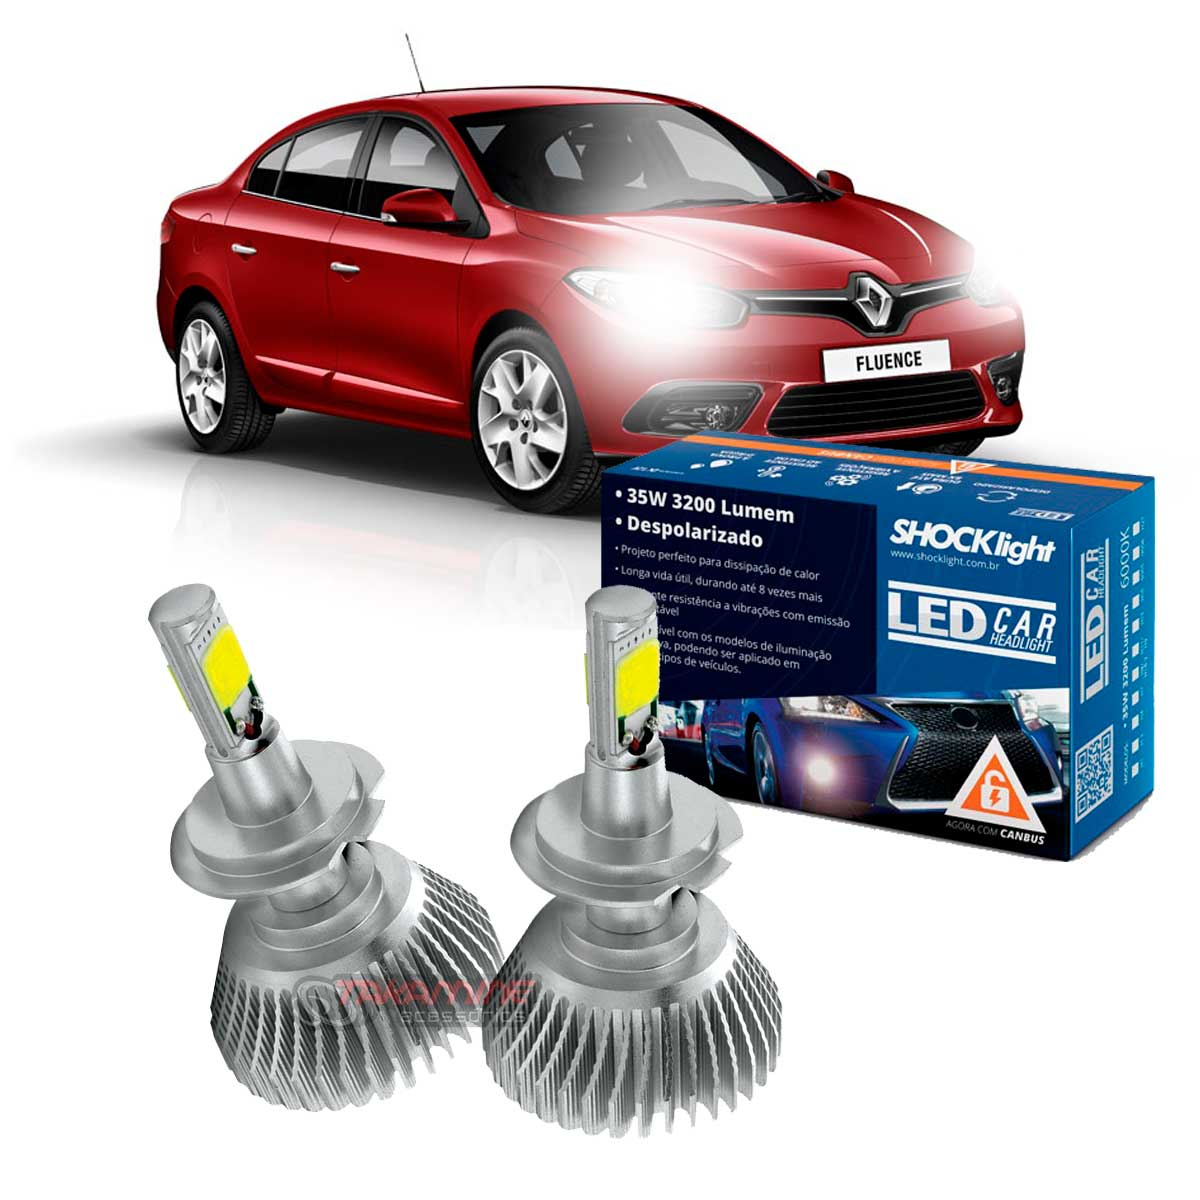 Kit LED Fluence 2011 2012 2013 2014 2015 2016 2017 tipo xenon farol baixo H7 35W Headlight